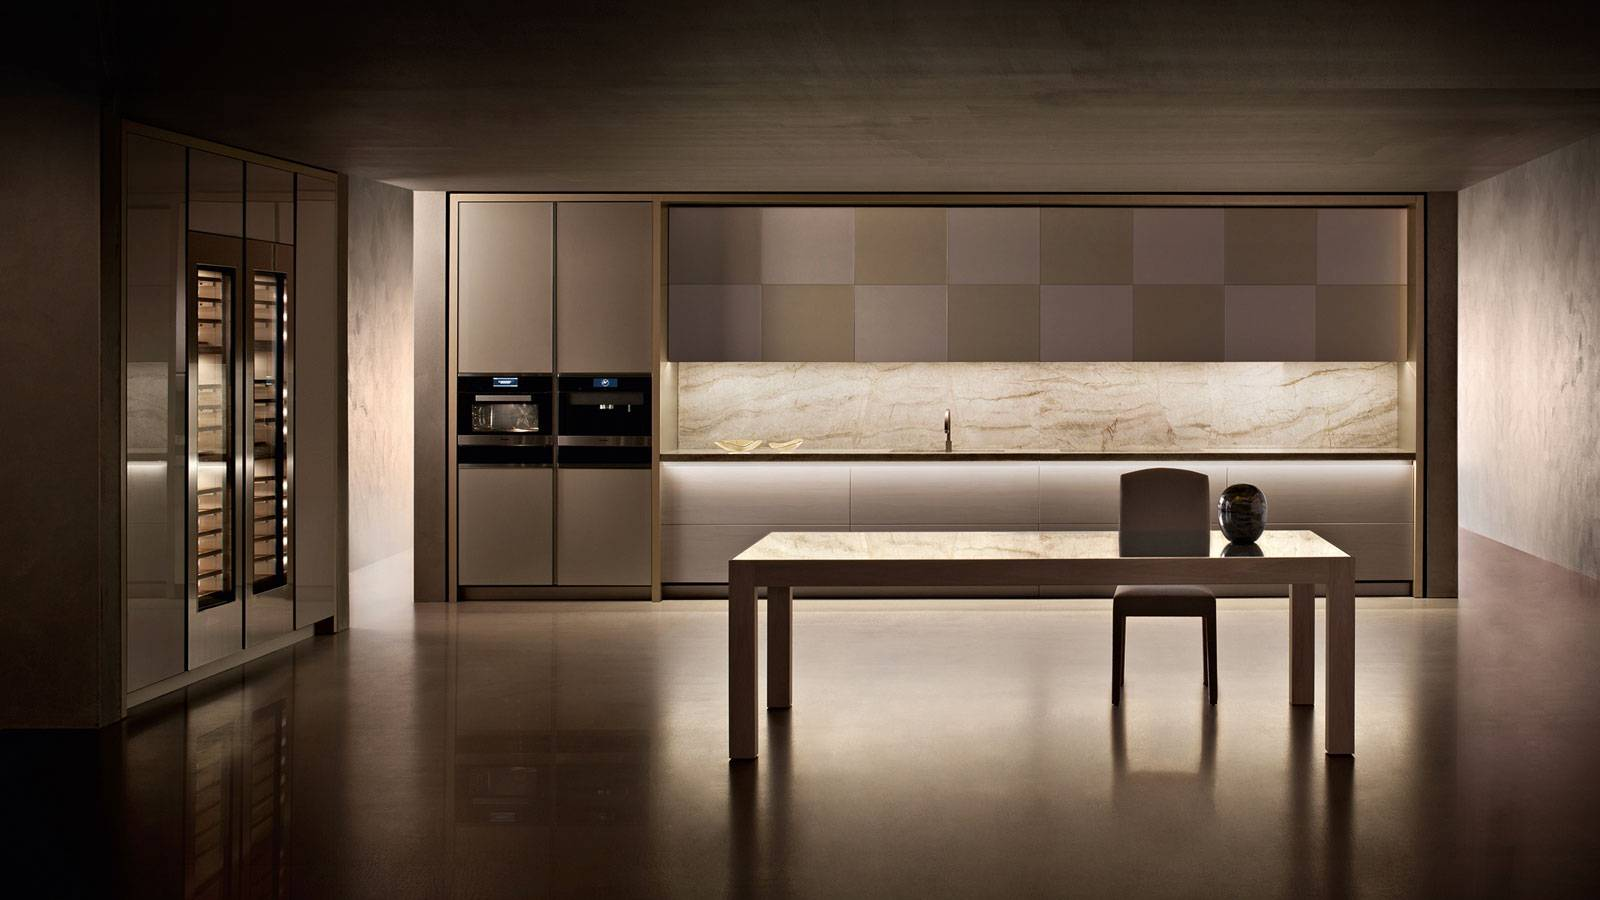 contemporary kitchen furniture by Giorgio Armani for Dada